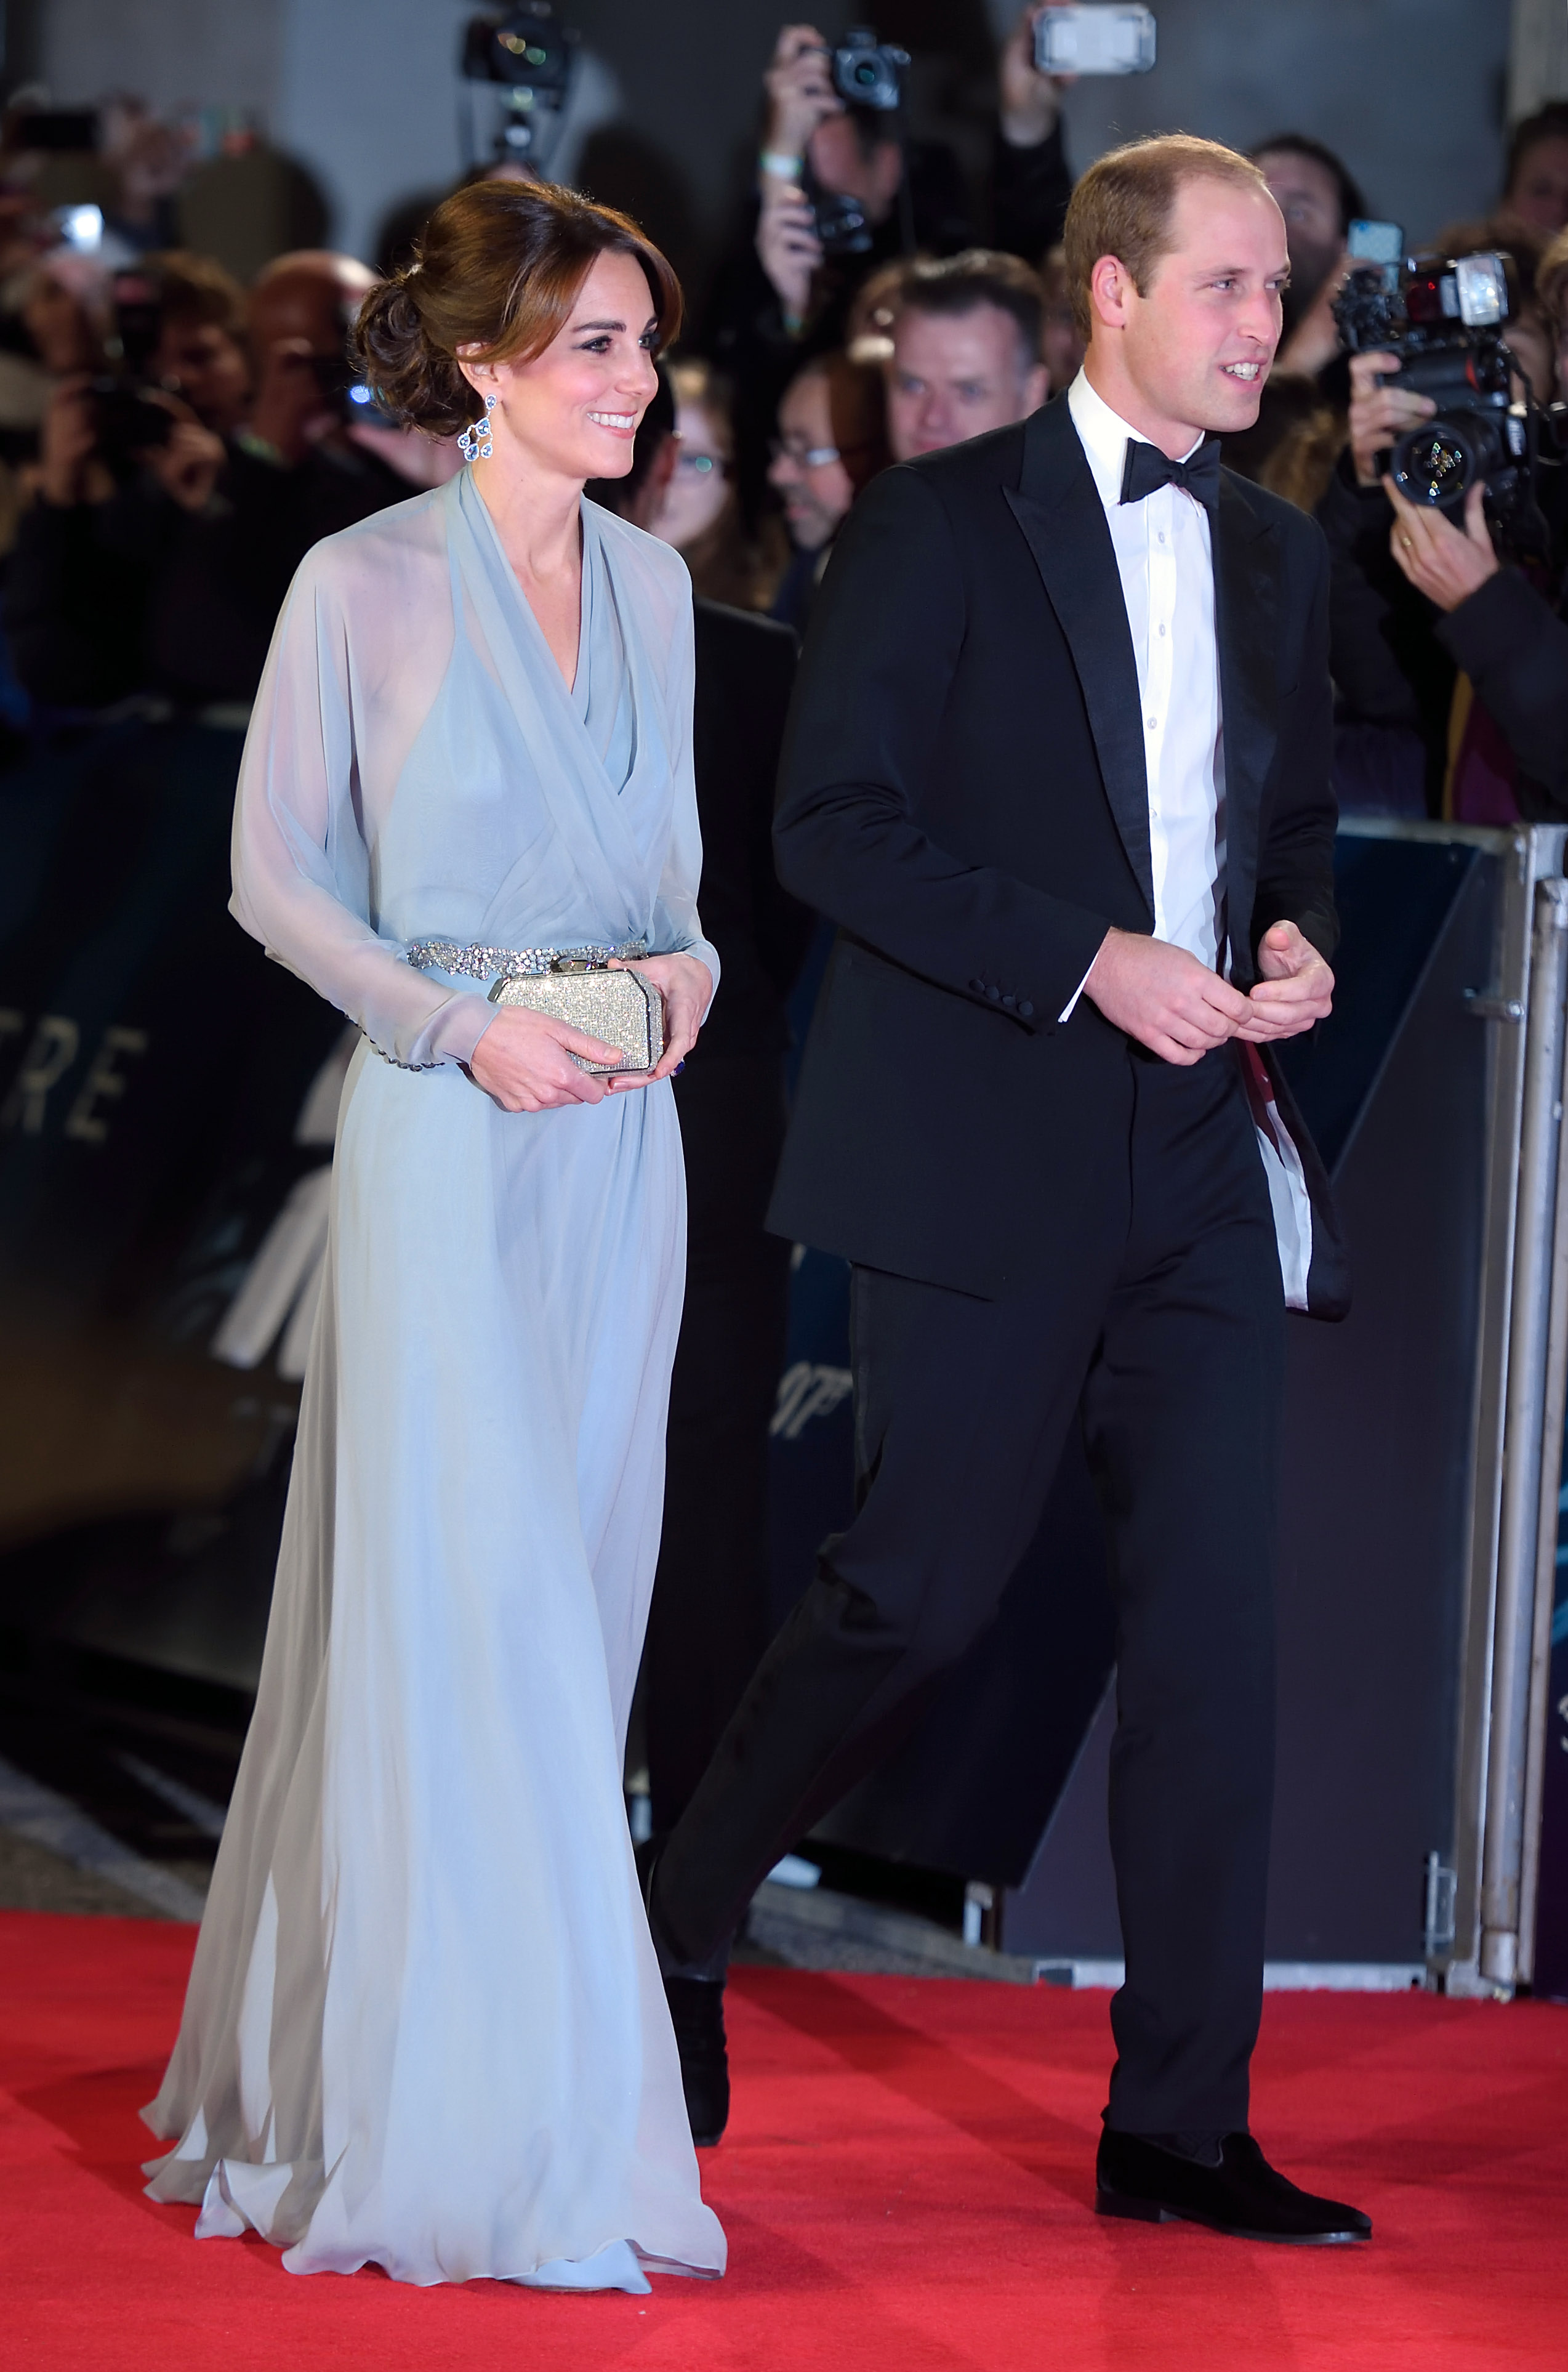 Kate Middleton and Prince William attend 'Spectre' film premiere